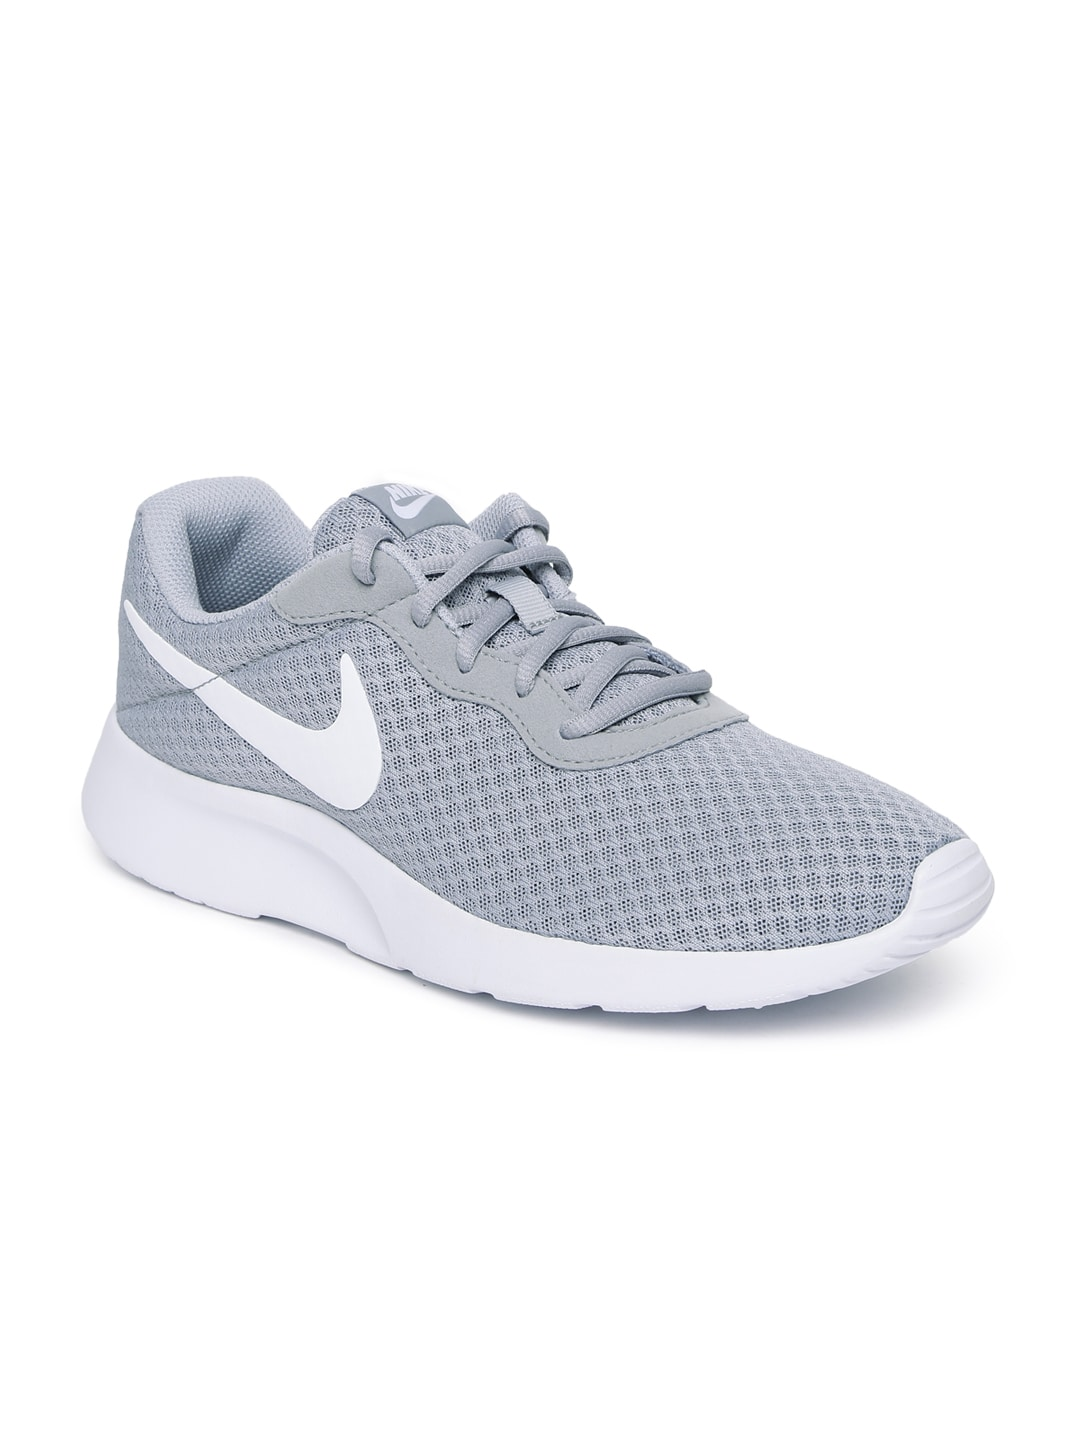 Sneaker Online In India Nike Grey Buy fYy6gb7v